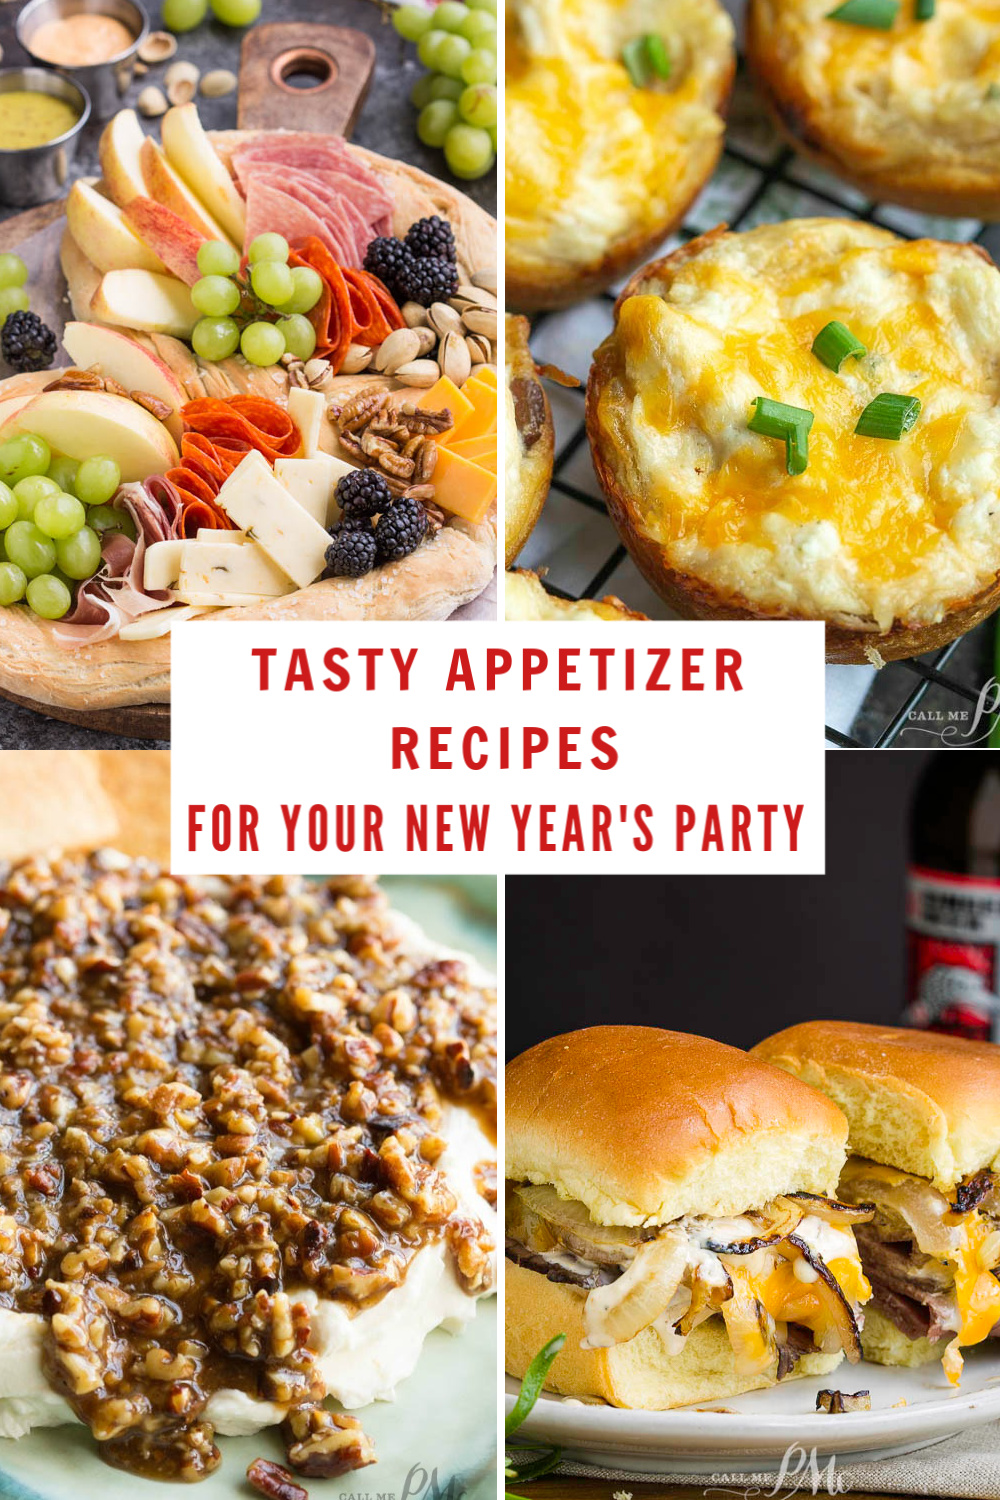 Tasty Appetizers for your New Year's Party that are guaranteed to please a crowd. #recipes #roundup #appetizers #newyears #party via @pmctunejones